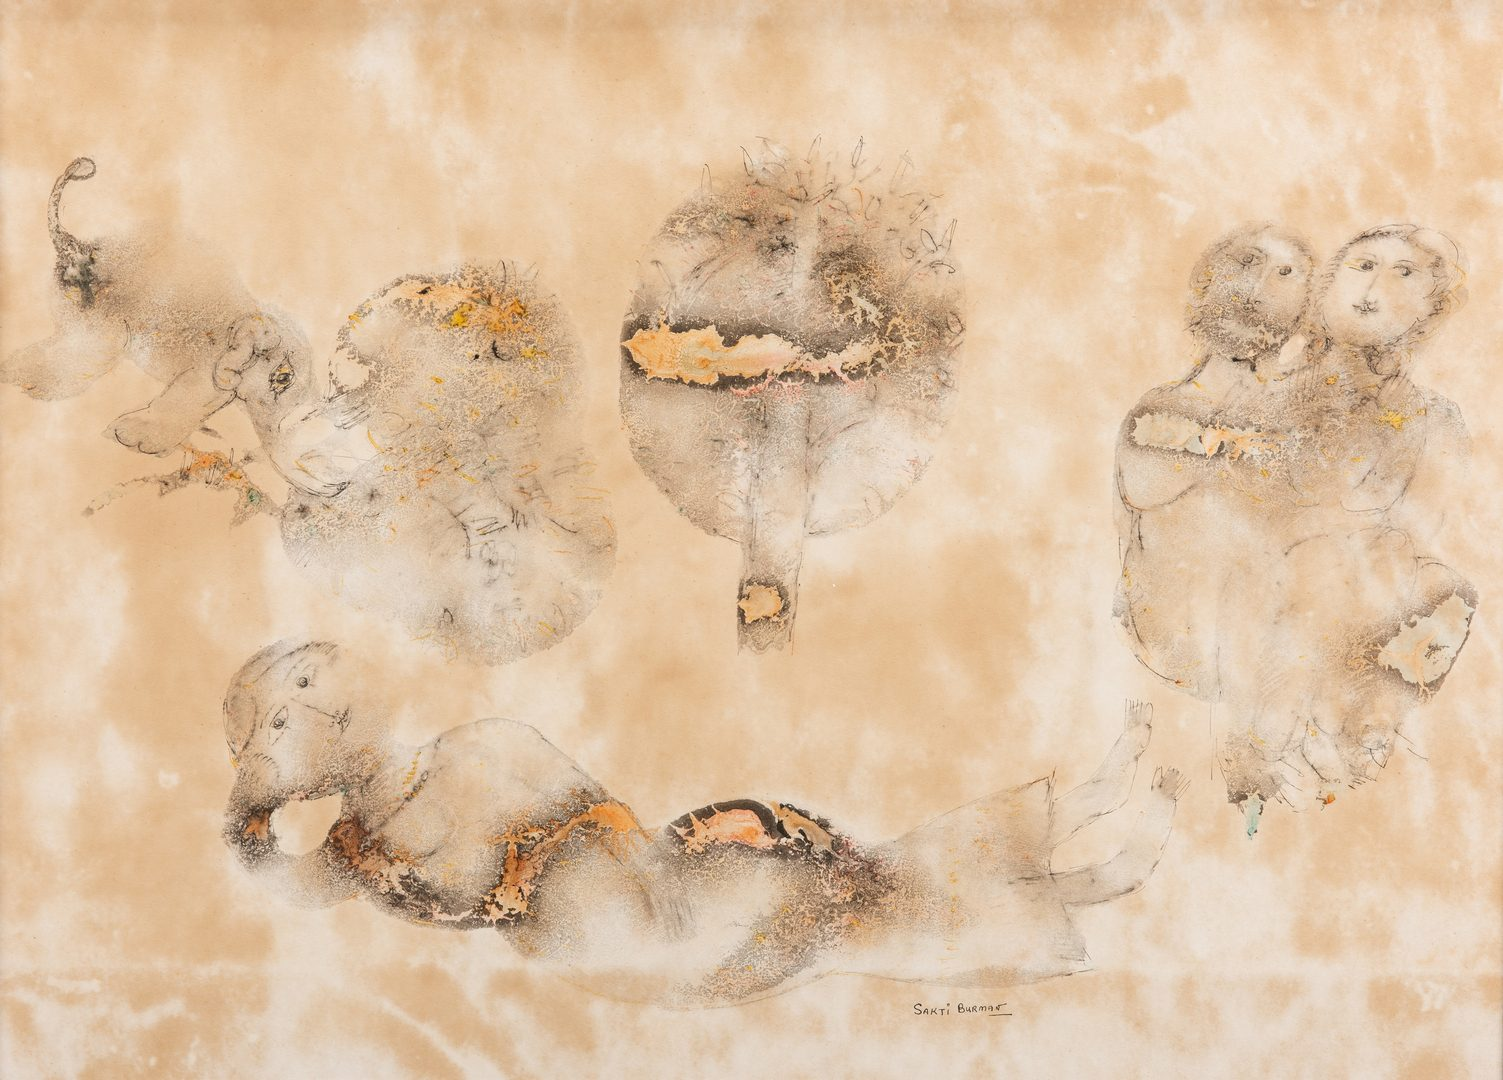 Lot 589: Sakti Burman Watercolor and Ink on Paper